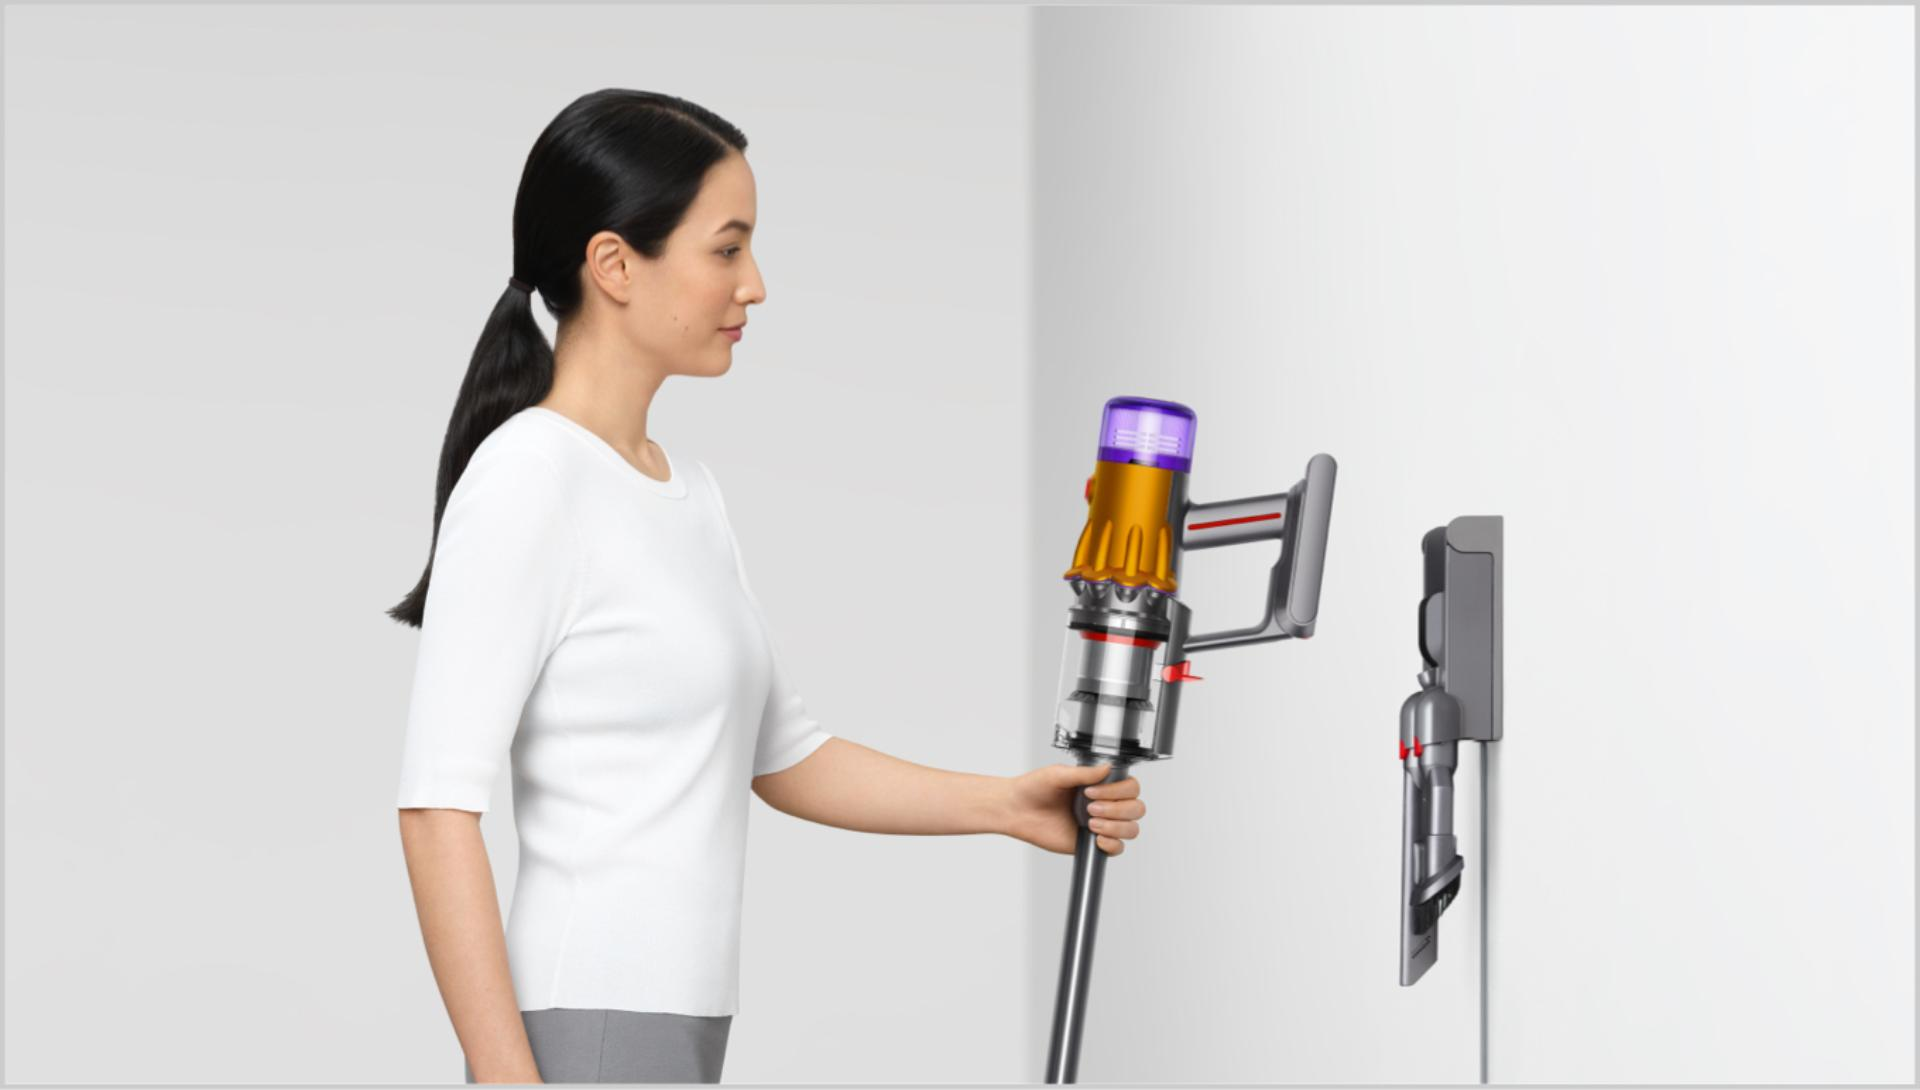 Woman placing Dyson vacuum into the wall dock